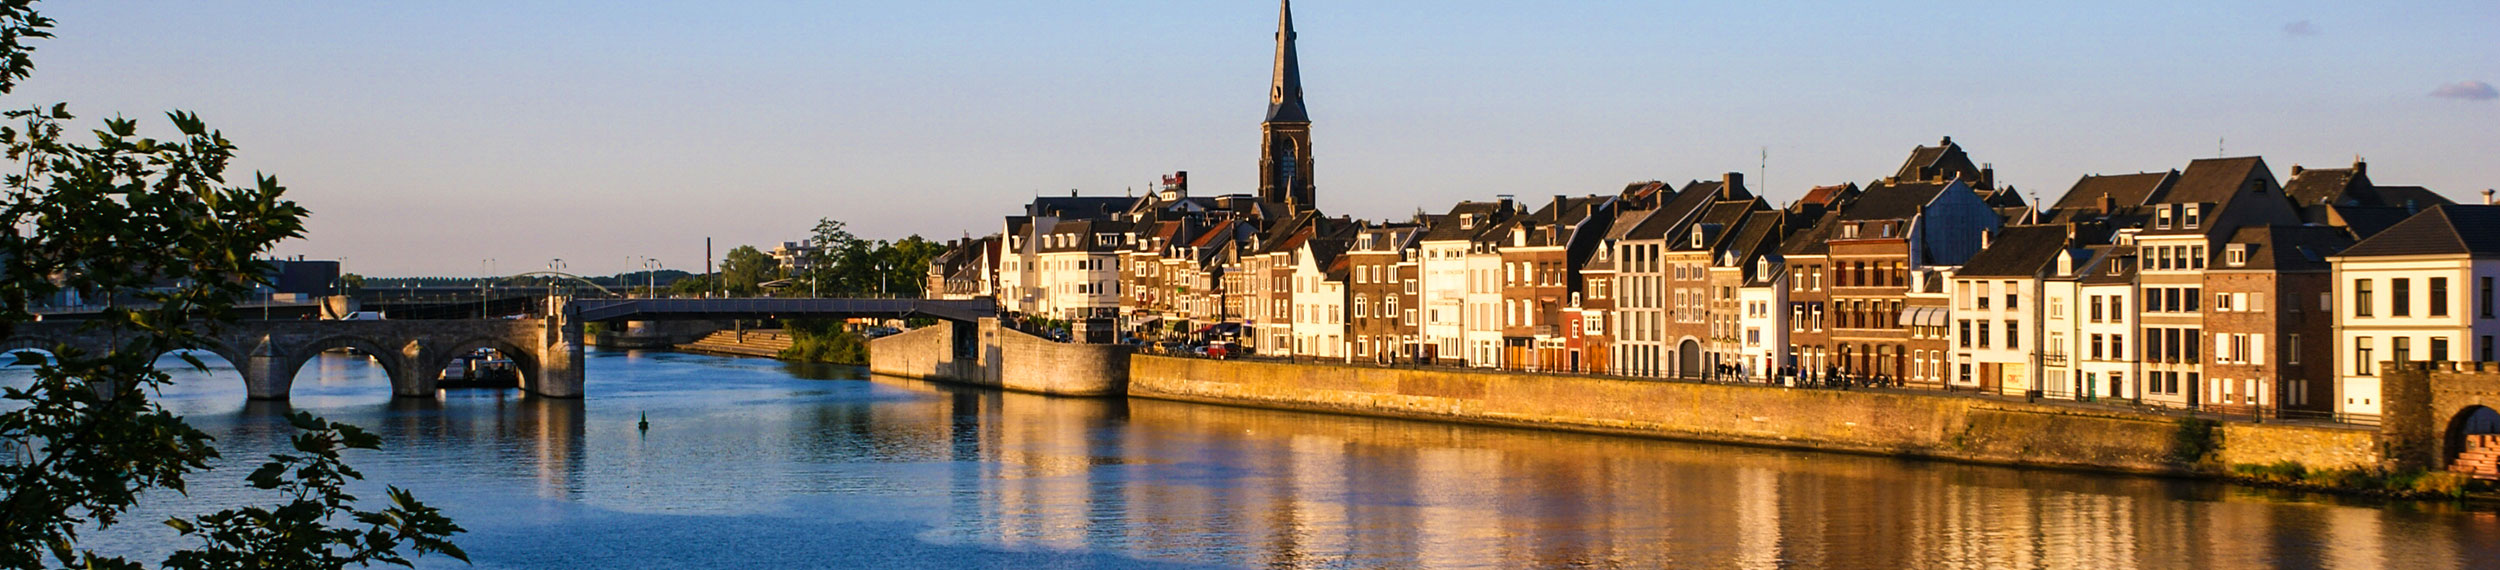 Maas River and buildings near the water in Maastricht, Netherlands.